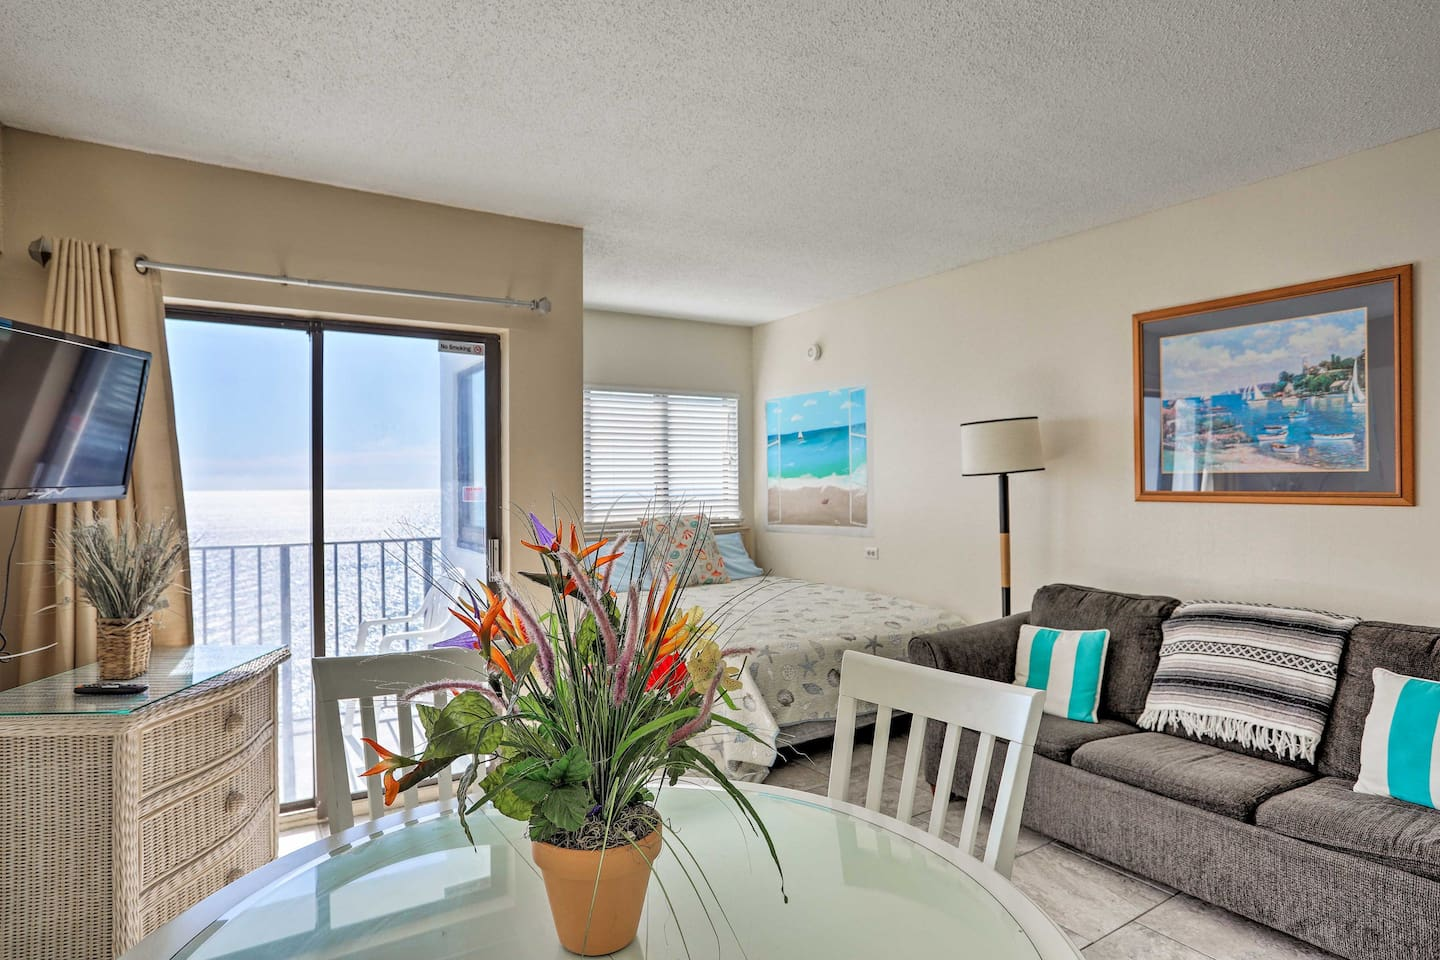 Enjoy your stay at this 1-bed, 1 -bath vacation rental condo in Myrtle Beach.